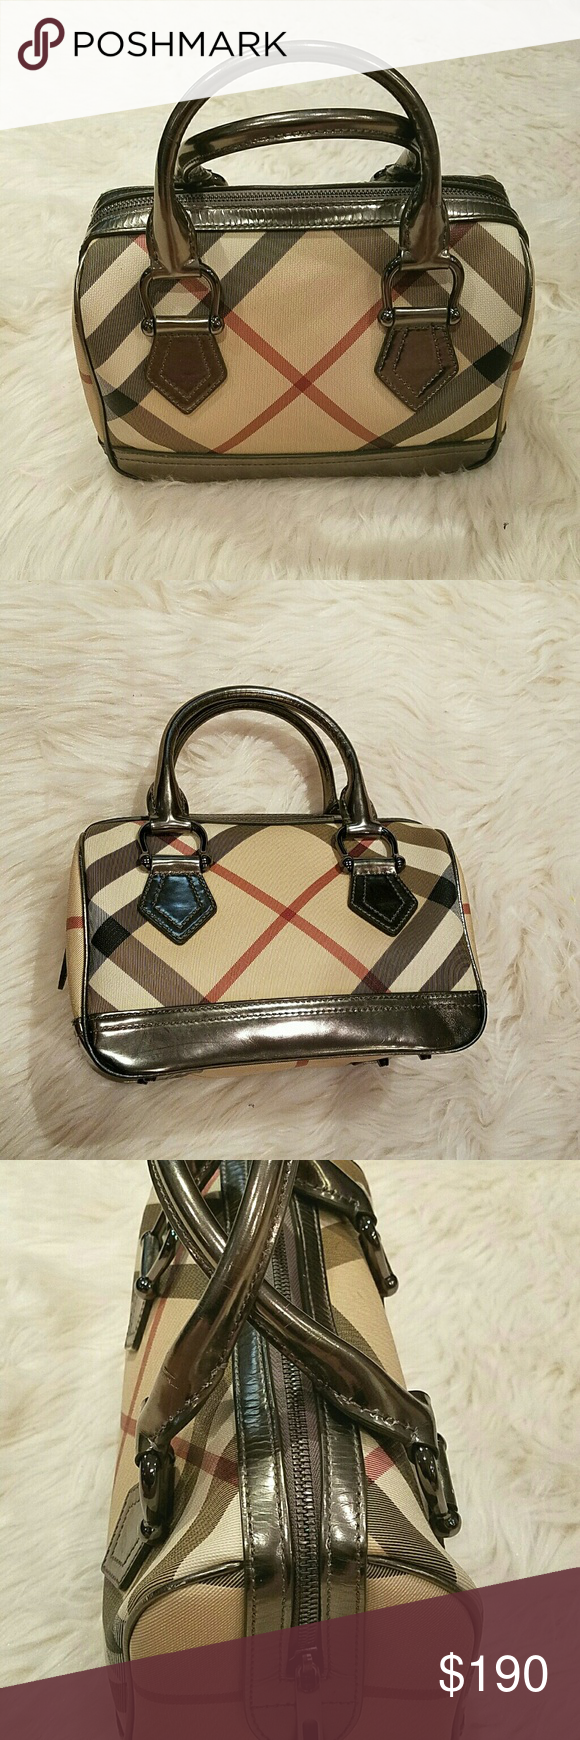 c53bf5f3b5e Fantastic BURBERRY Small Metallic Doctors Bag